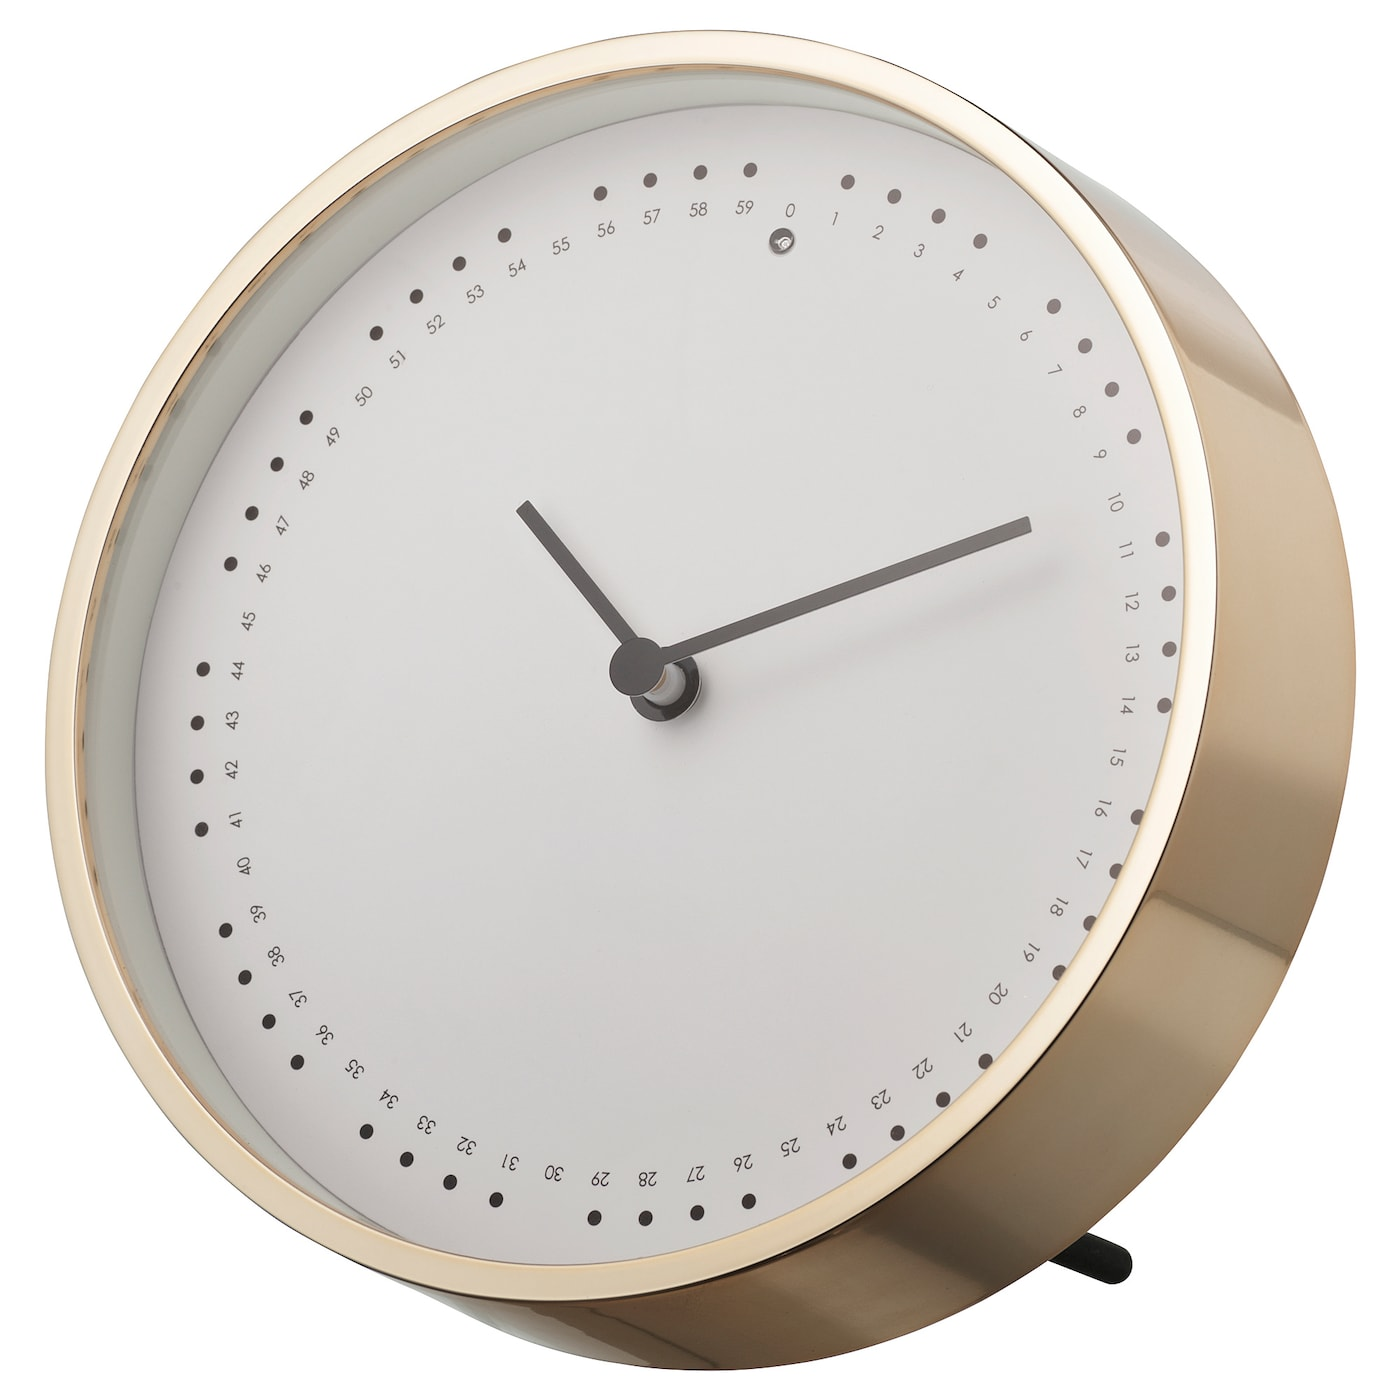 IKEA PANORERA clock No disturbing ticking sounds since the clock has a silent quartz movement.